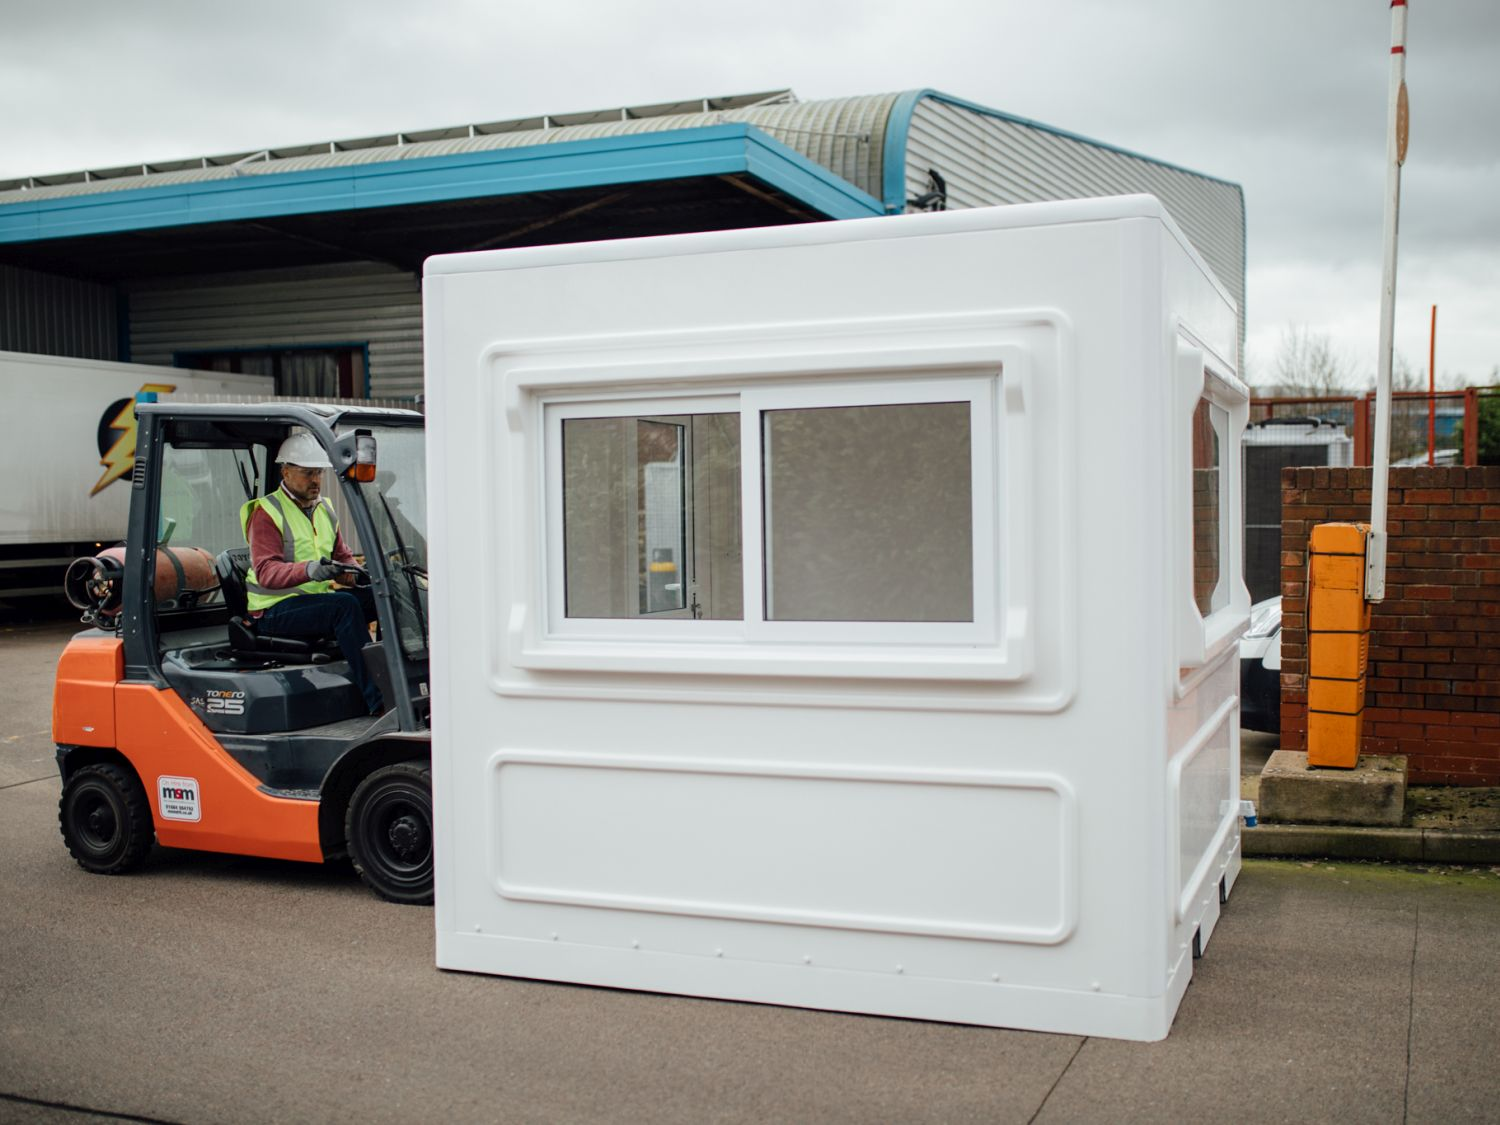 Booth from UK Kiosks in Worcestershire, UK